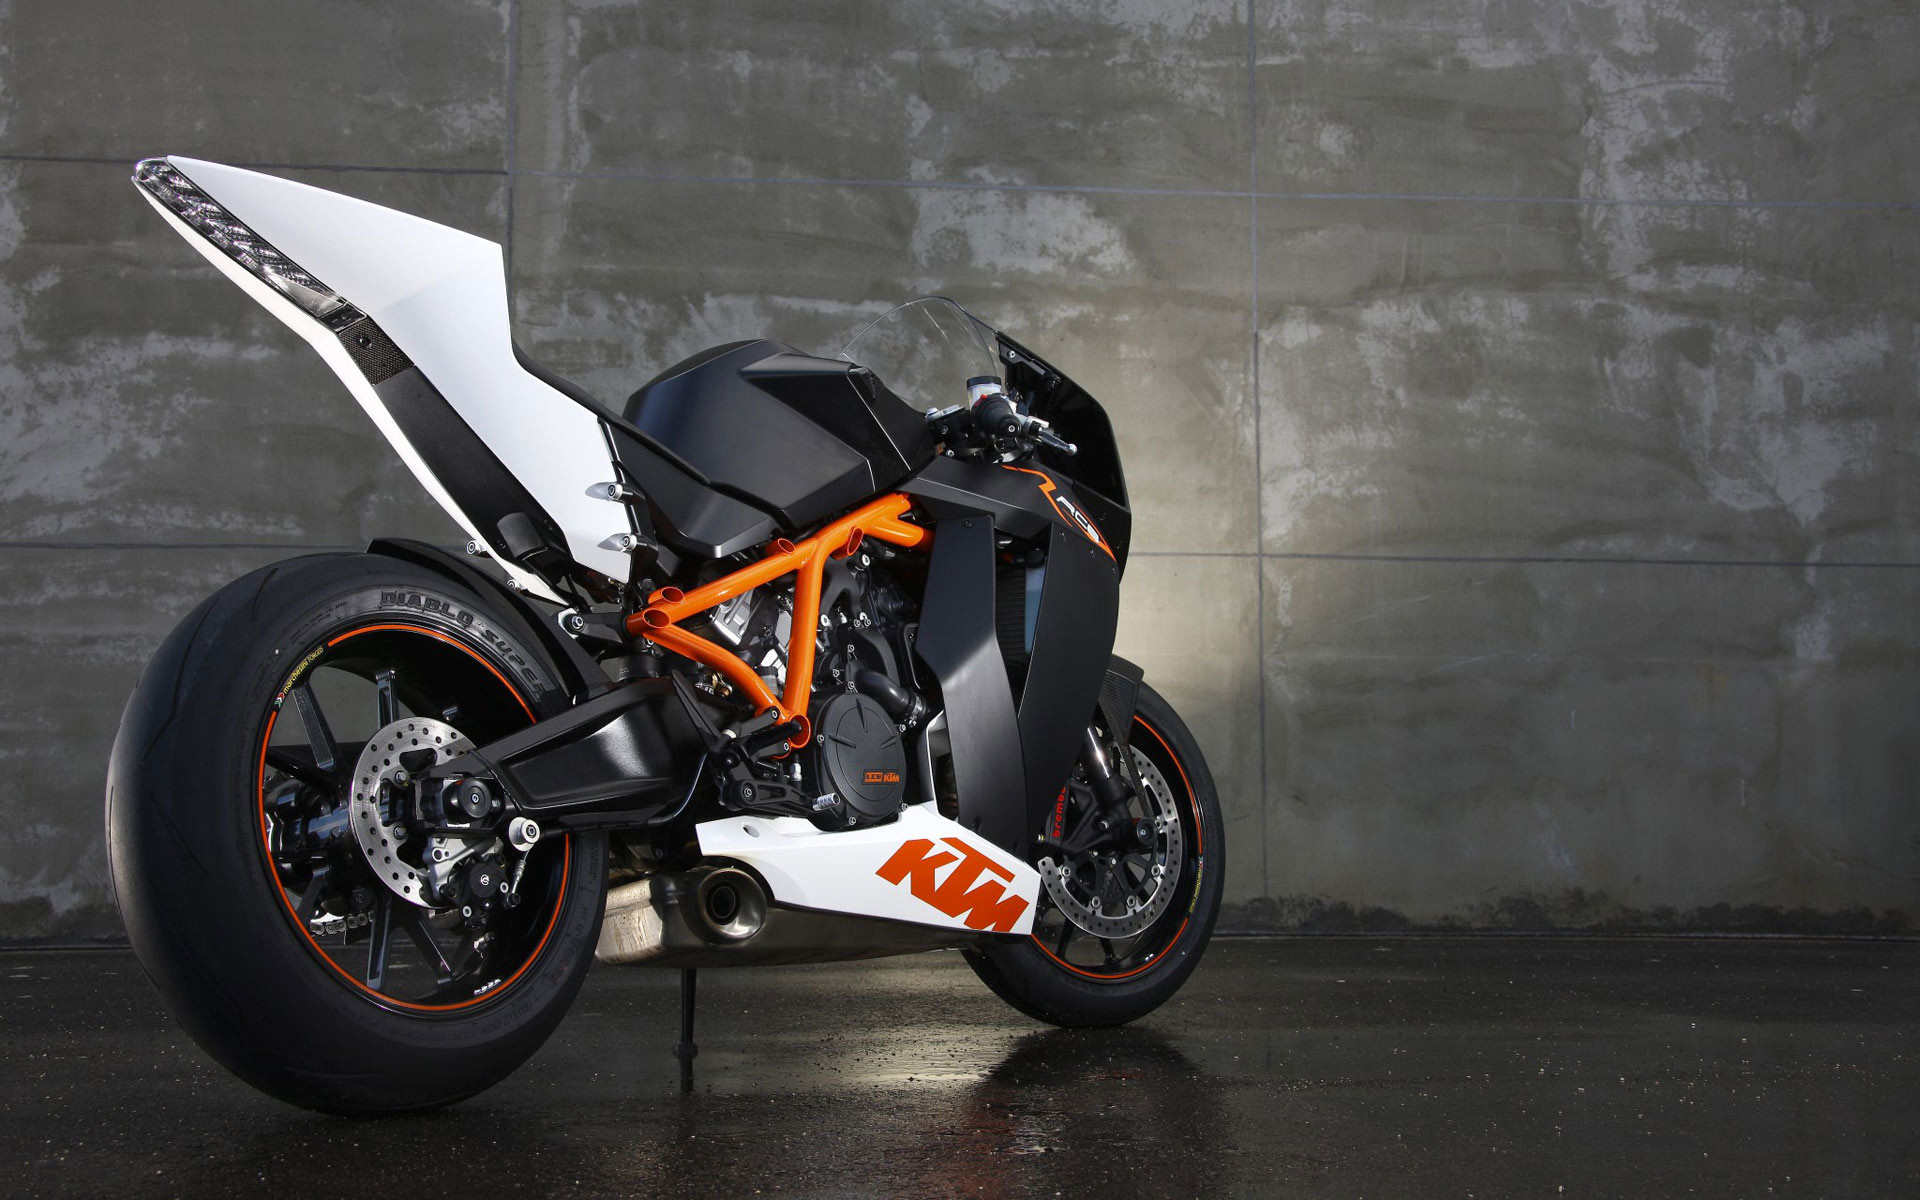 KTM 1190 RC8 R Wallpapers | HD Wallpapers